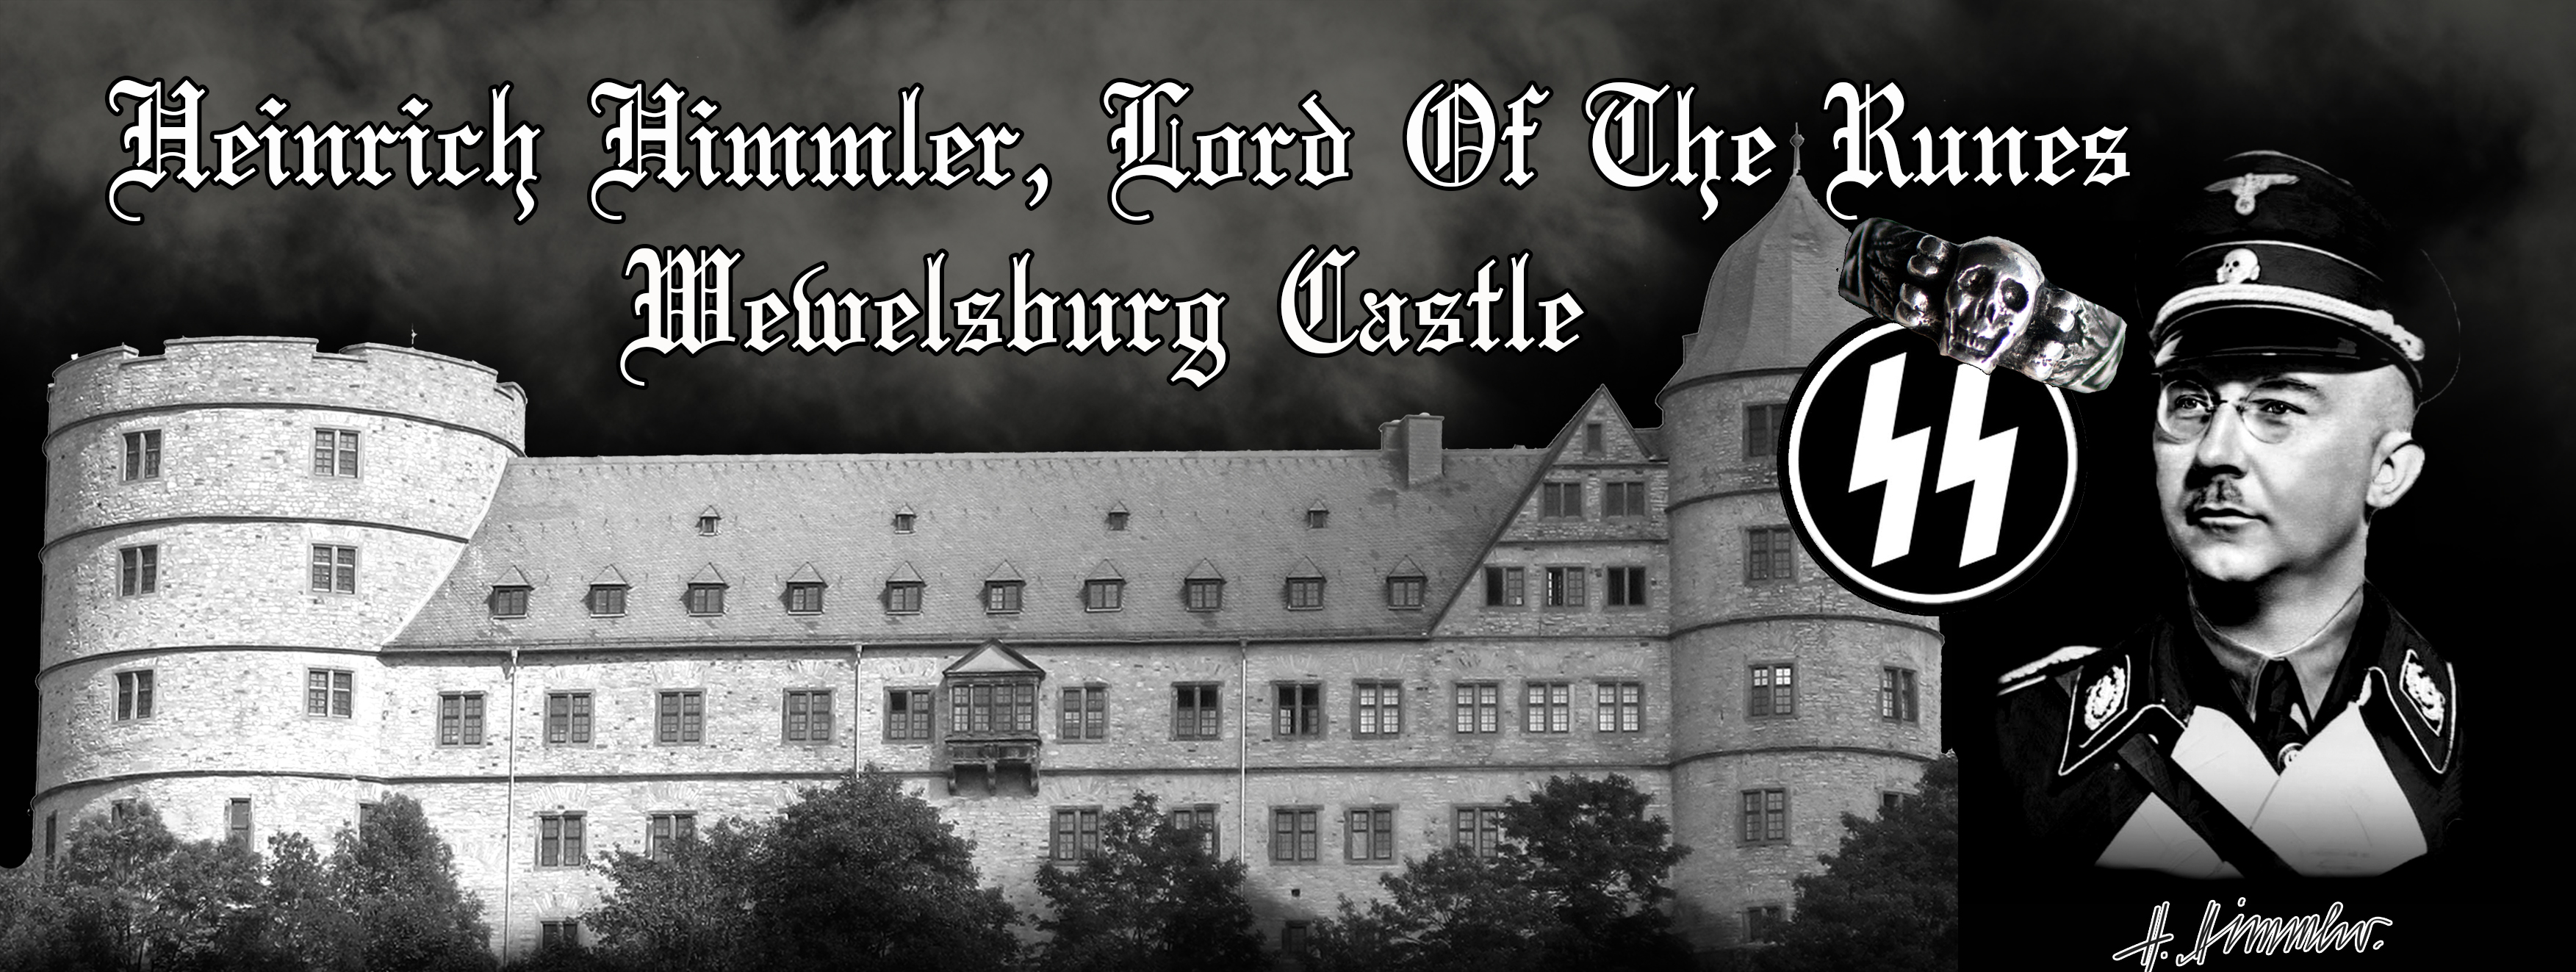 Wewelsburg Castle - Heinrich Himmler, Lord of The Runes